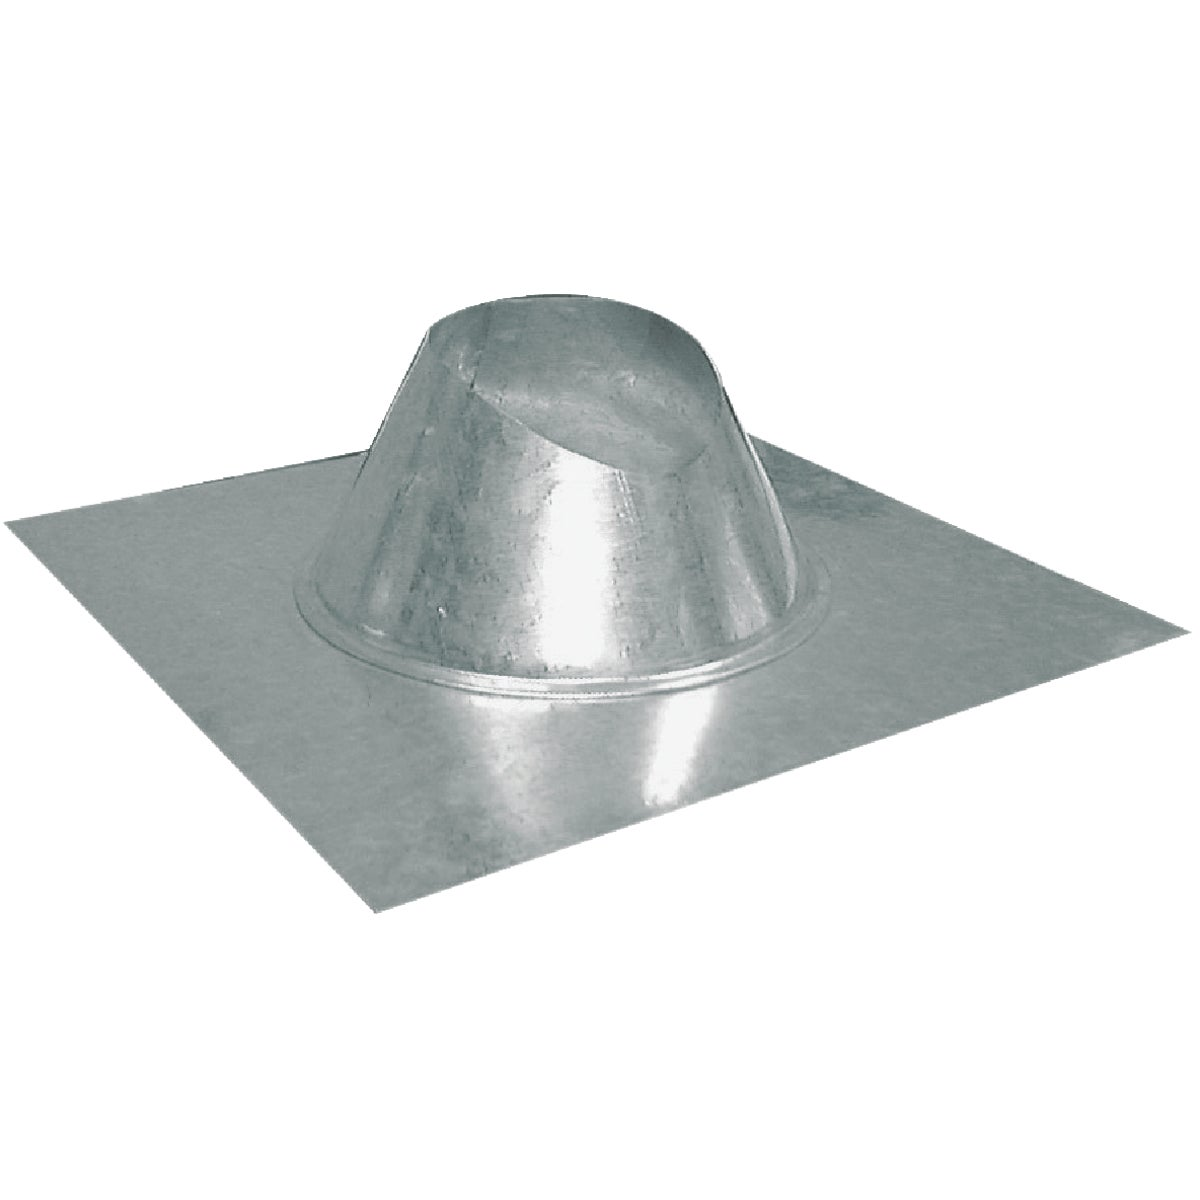 "7"" GALV ROOF FLASHING"